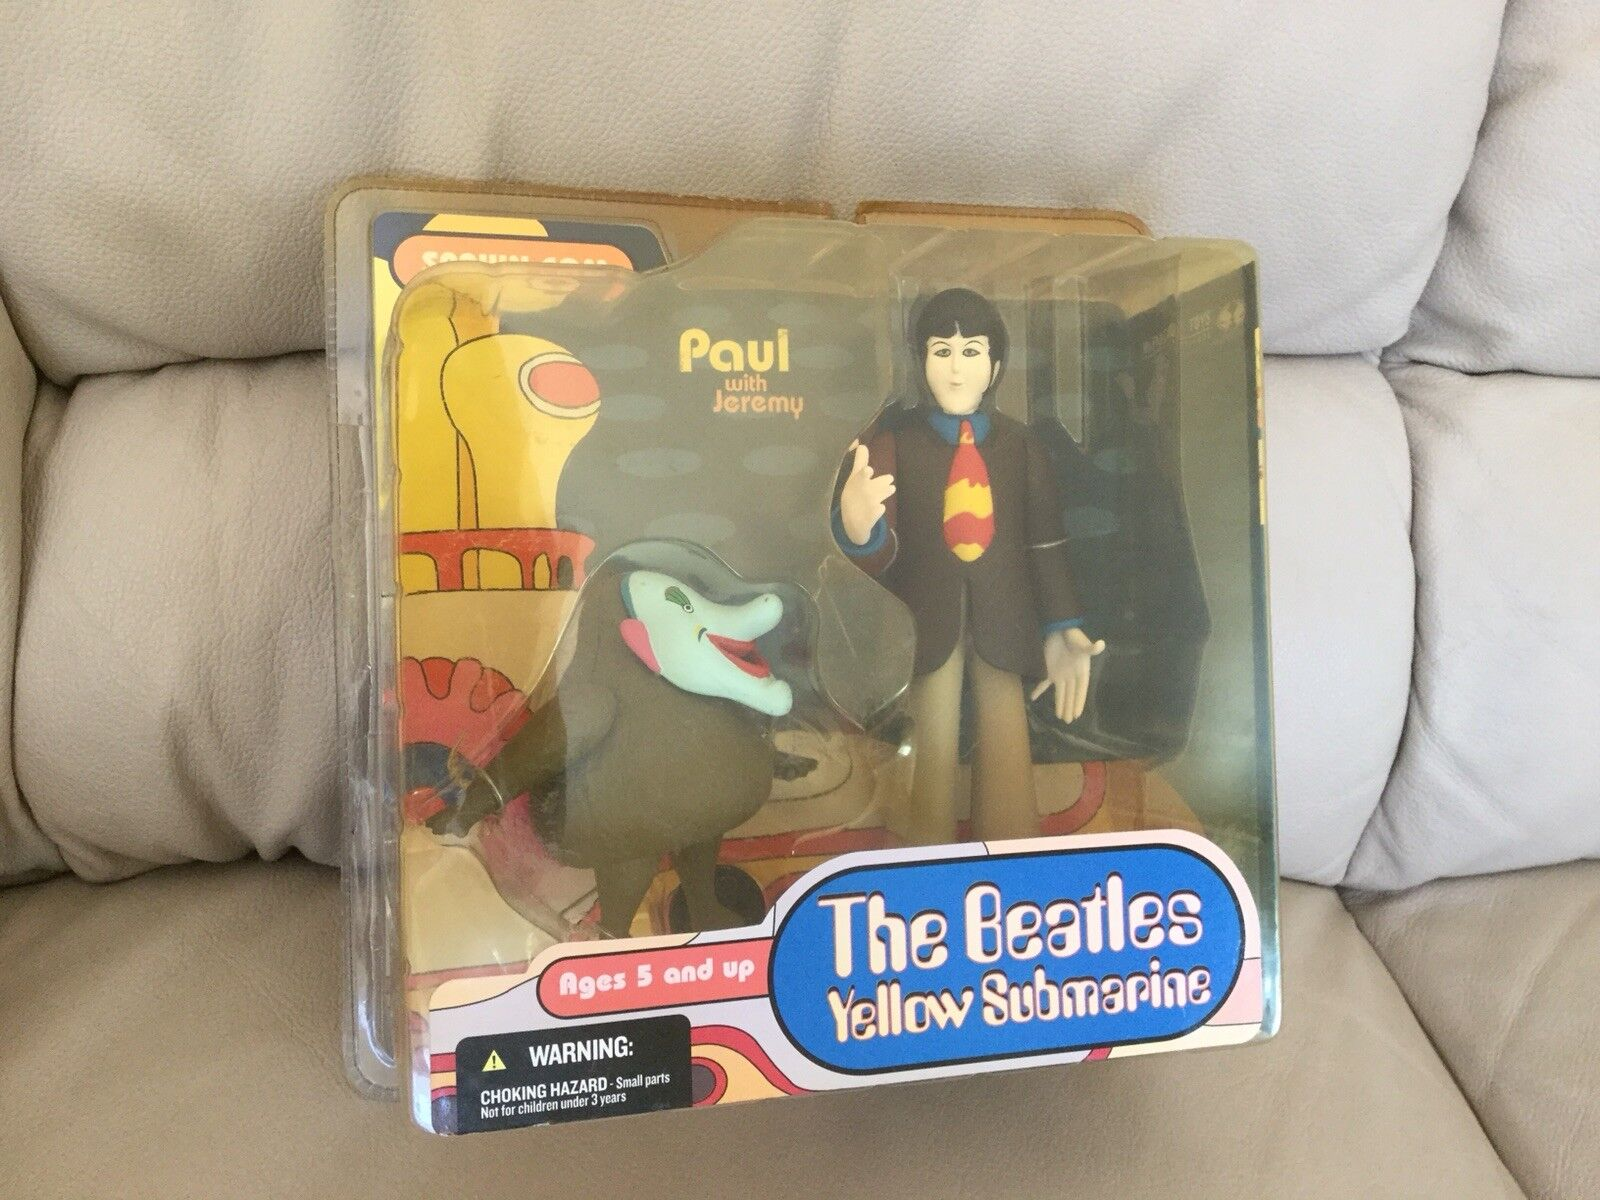 Spawn.Com The Beatles Yellow Submarine Paul Jeremy Action Figure MIB